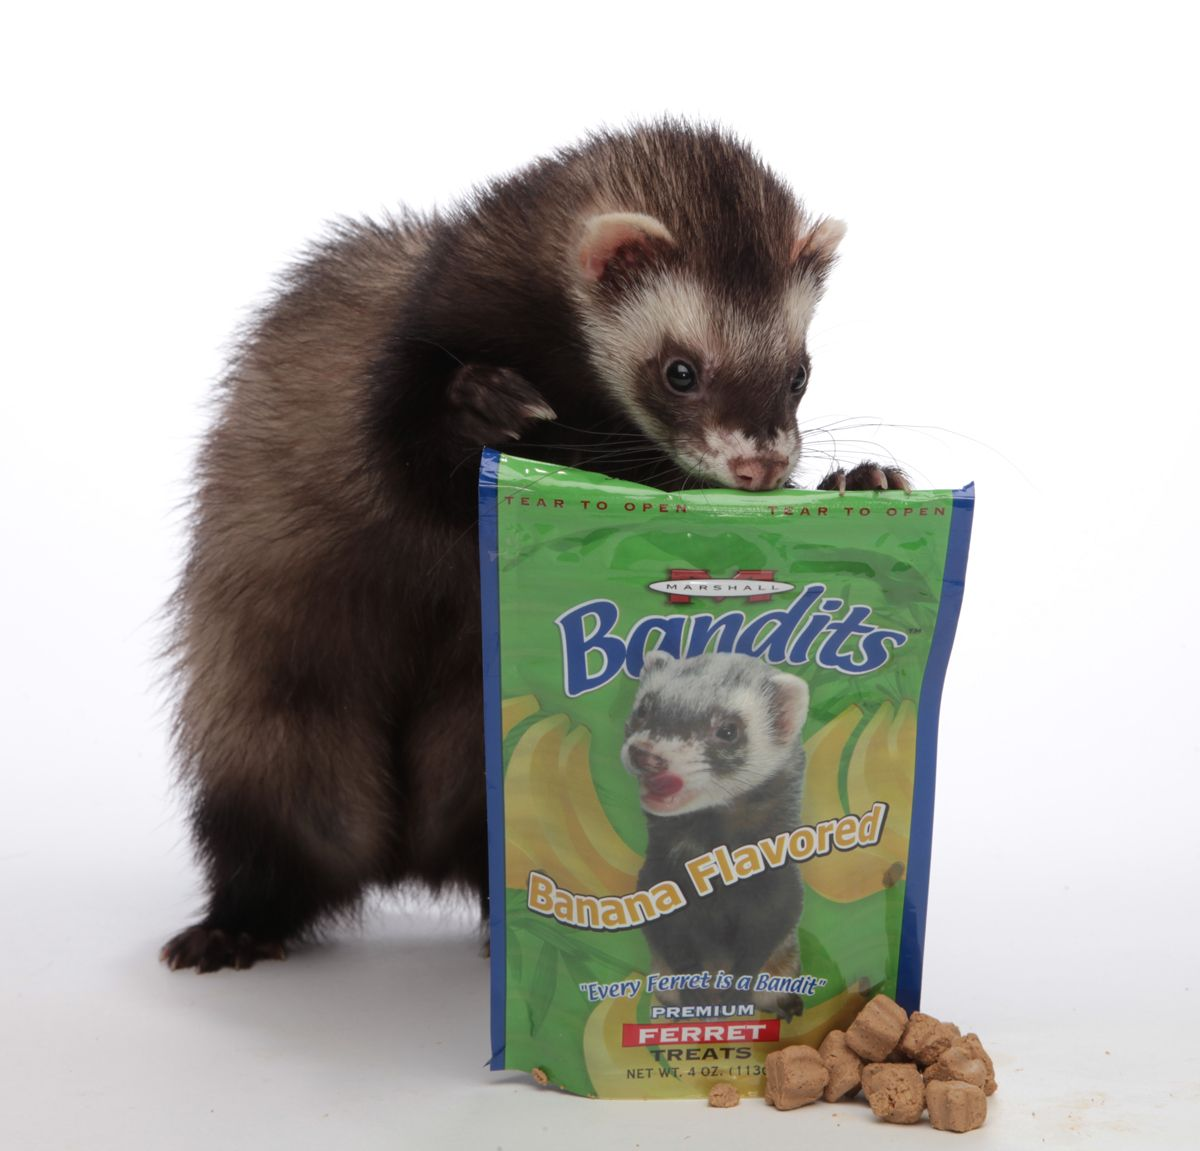 Yummy Bandit Treats For Ferrets Pet Ferret Ferret Ferret Toys